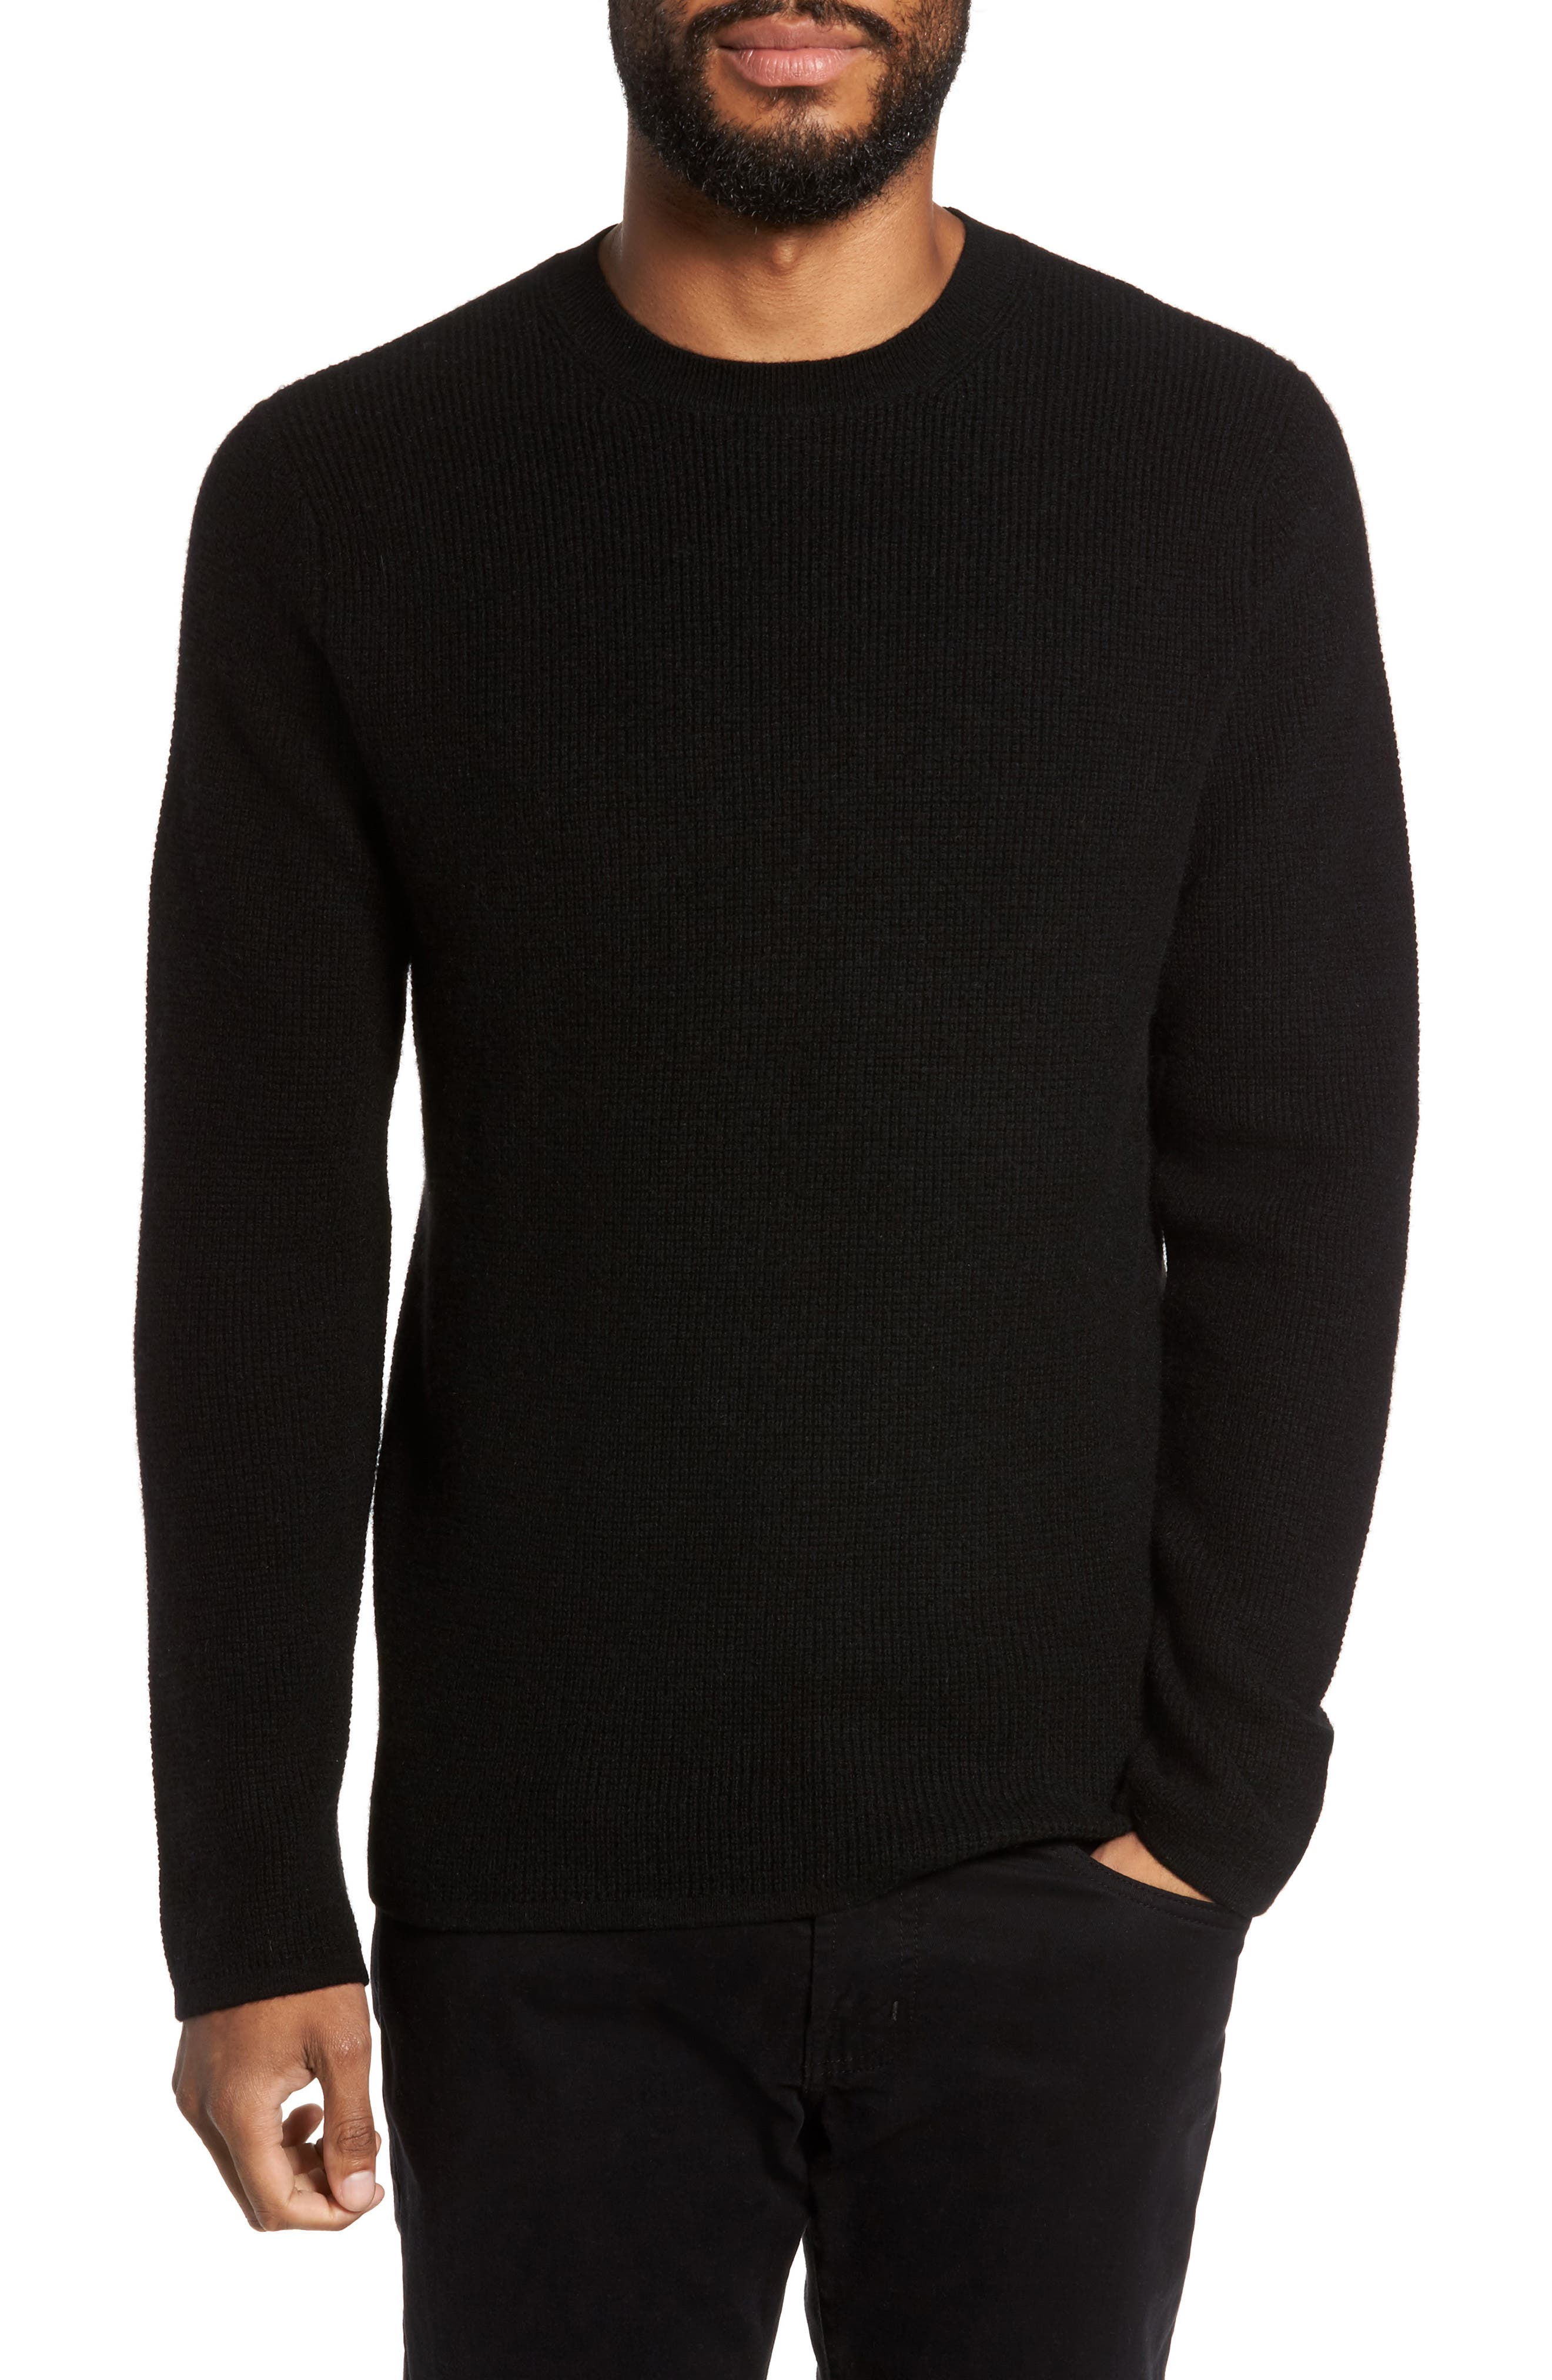 Thermal Wool & Cashmere Sweater,                         Main,                         color, Black